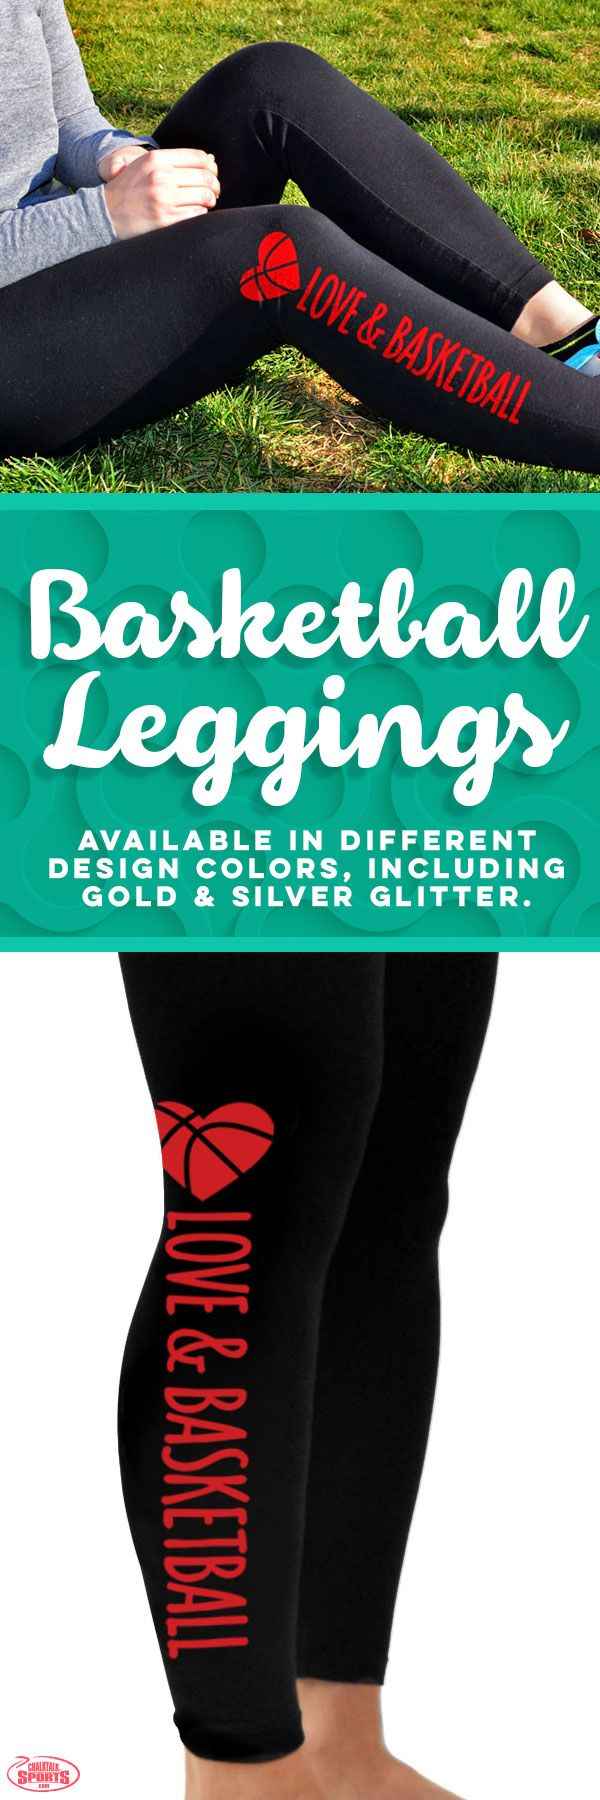 Our Love and Basketball leggings are comfortable and come in a variety of design colors including silver and gold glitter. Check out more of basketball leggings on our site.